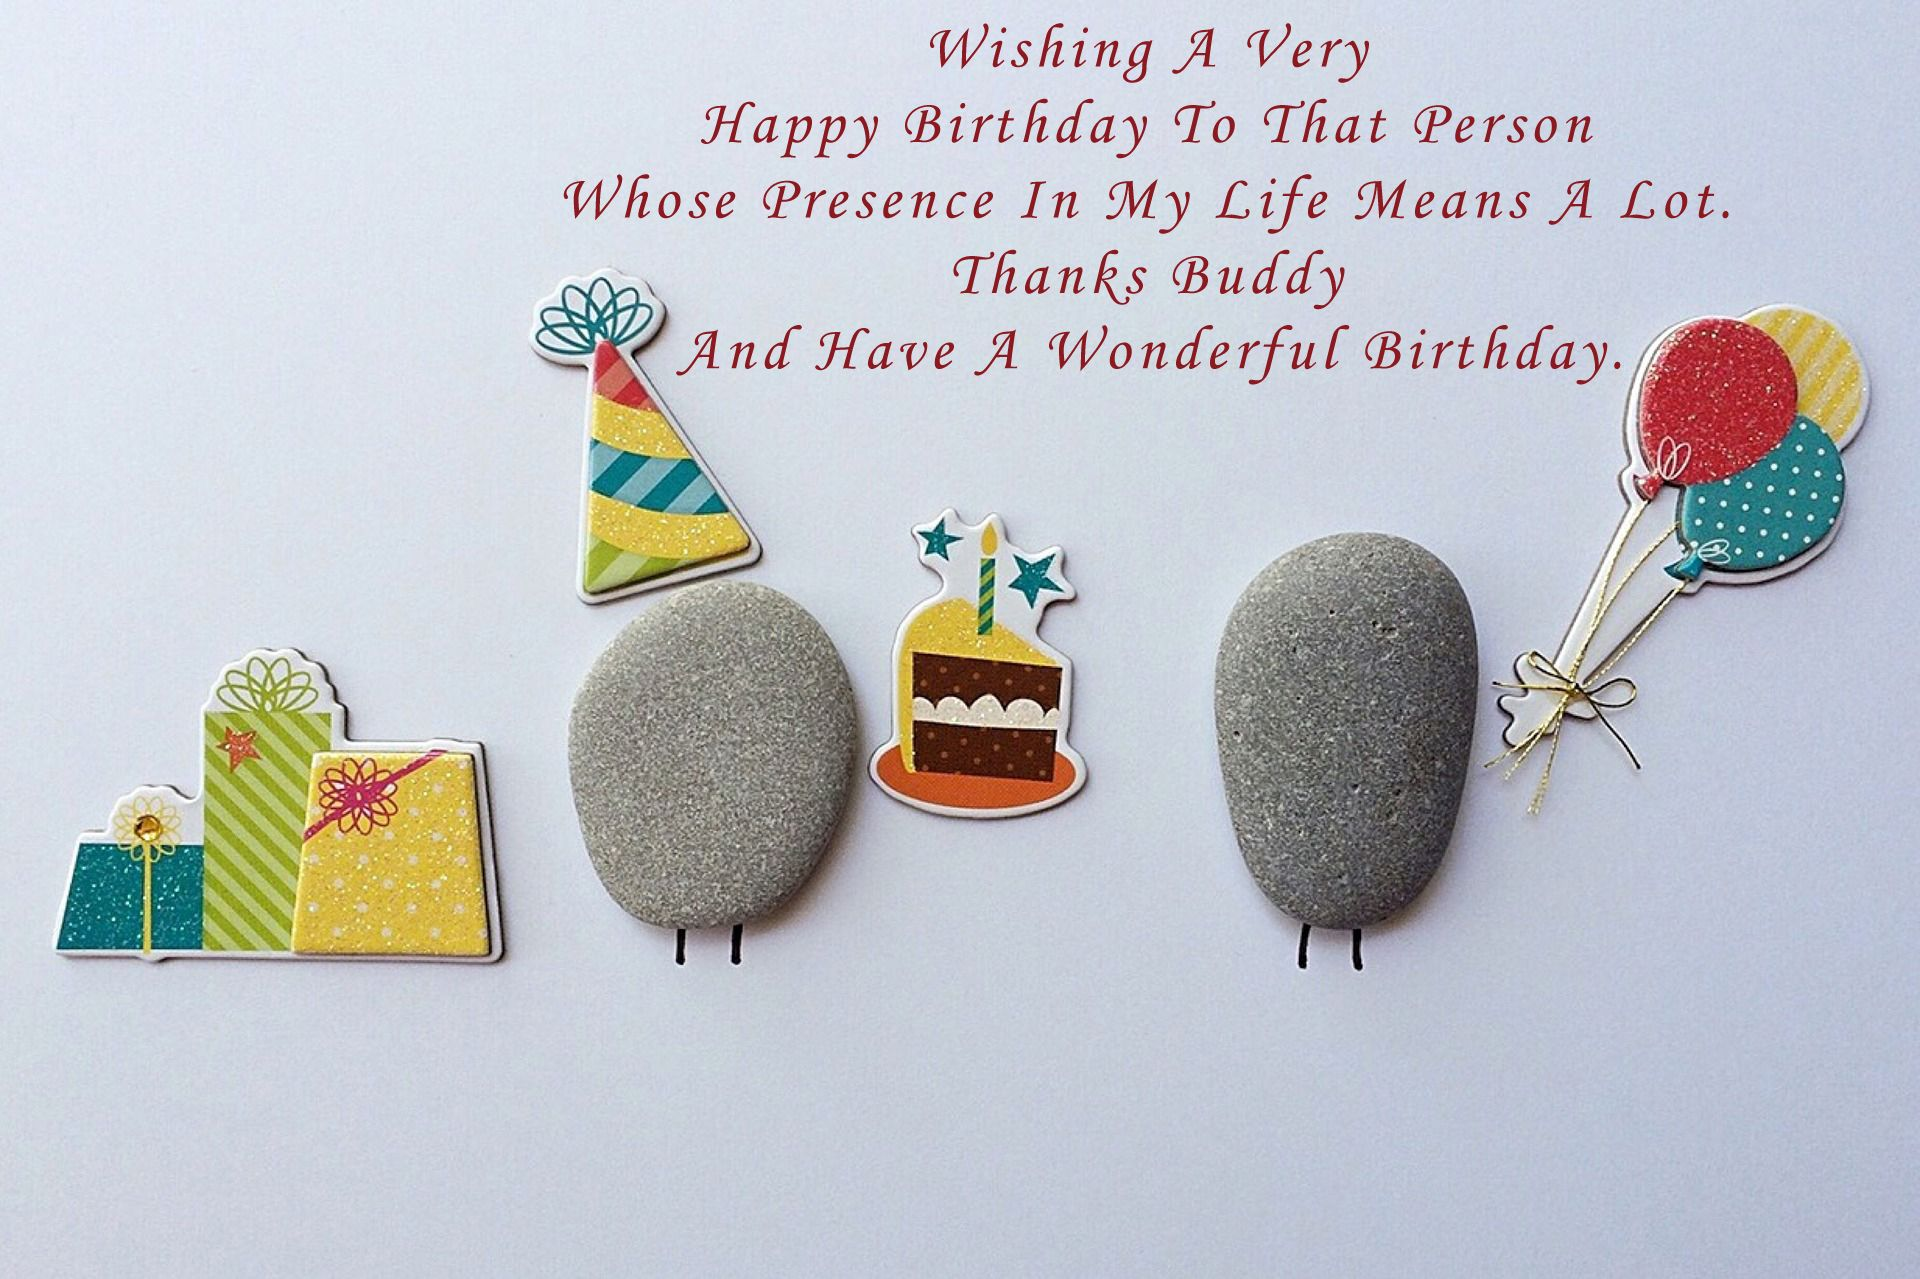 Pin by Nancy Pad t on Birthday cards Pinterest